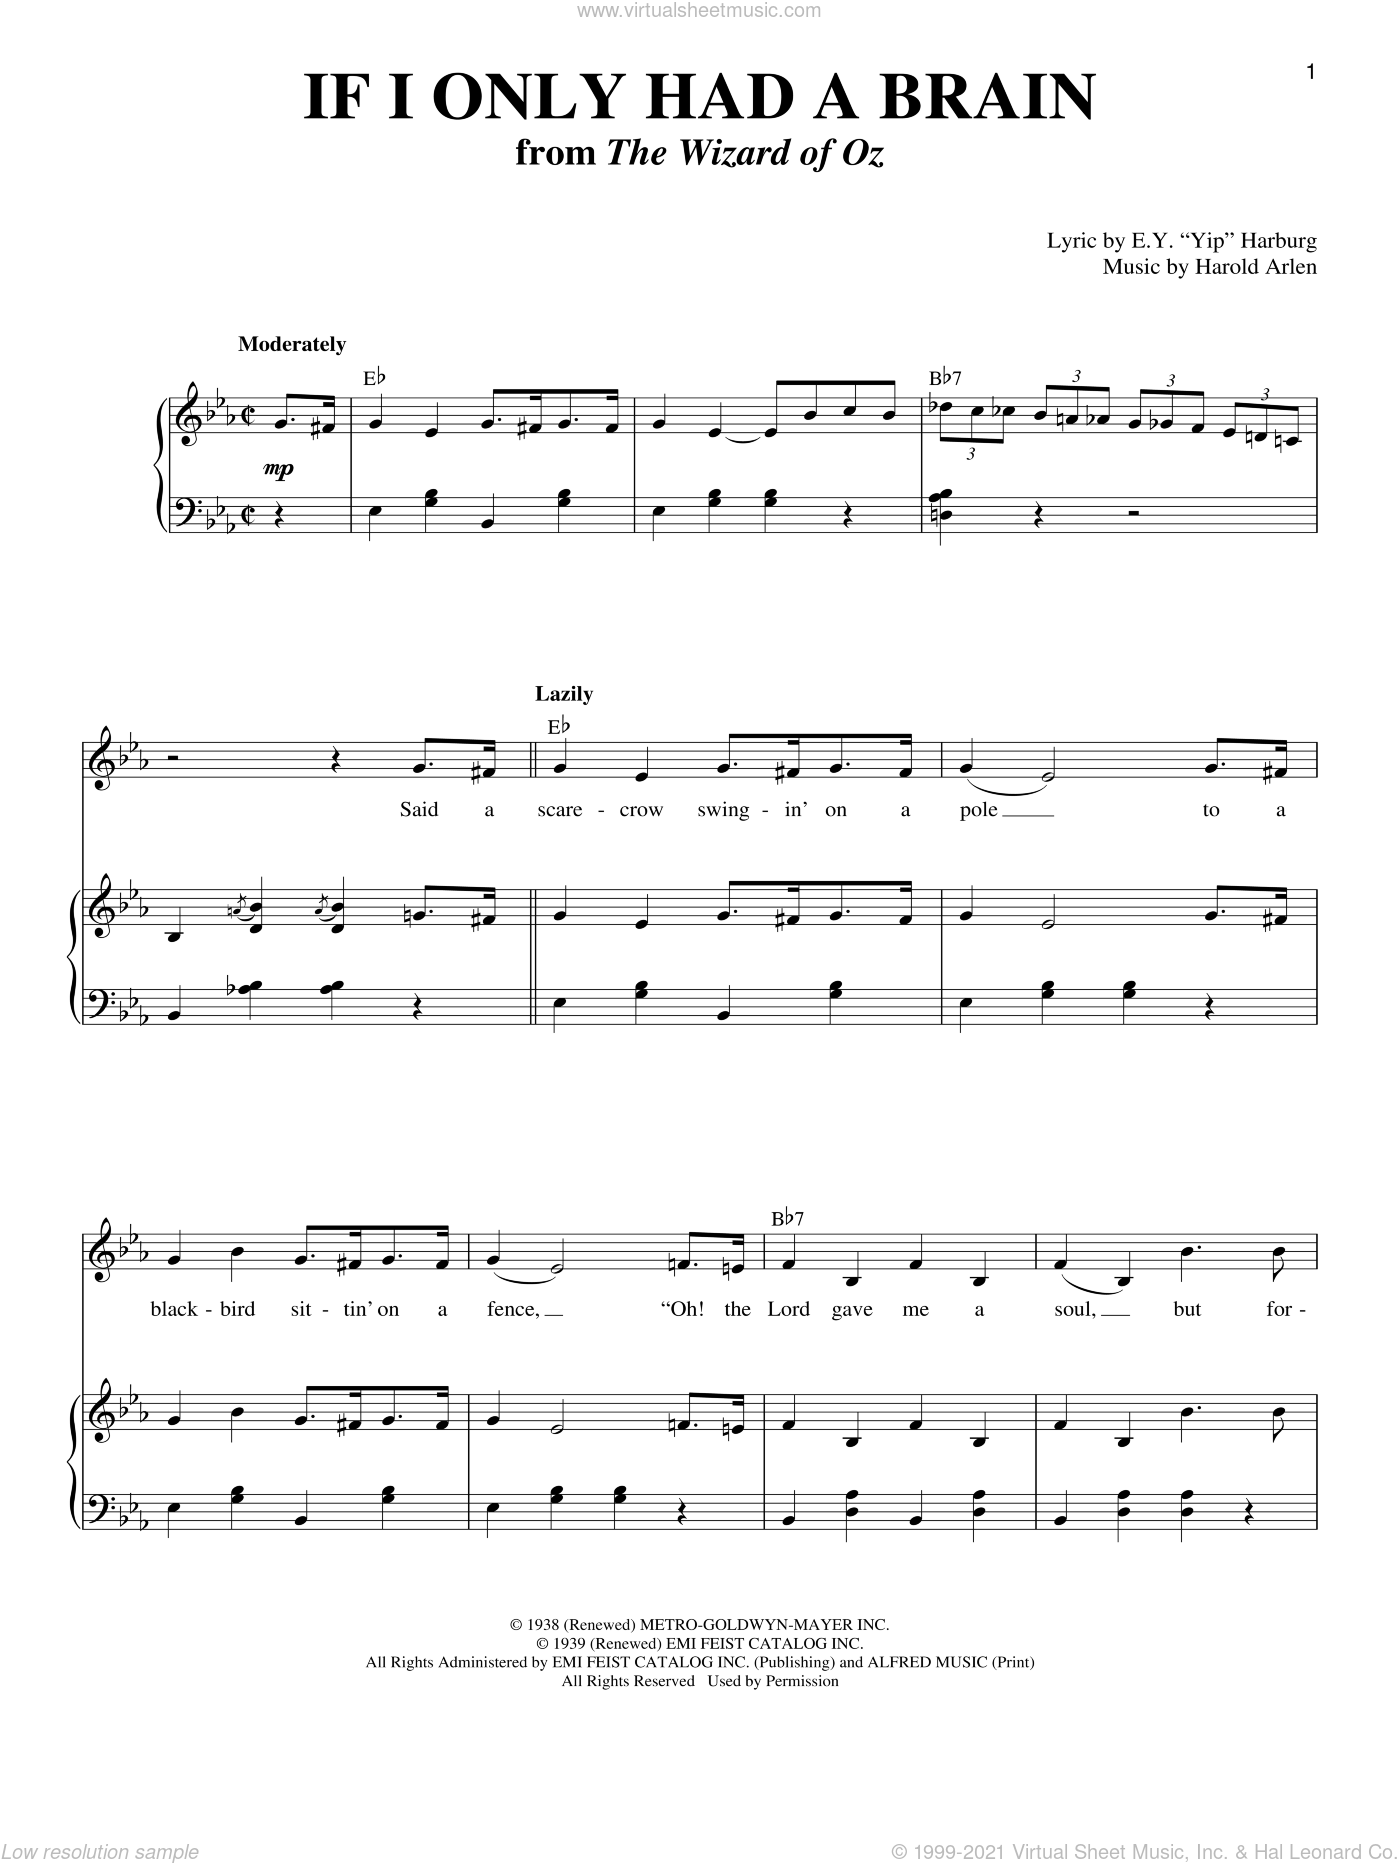 If I Only Had A Brain sheet music for voice and piano by Harold Arlen and E.Y. Harburg, intermediate skill level